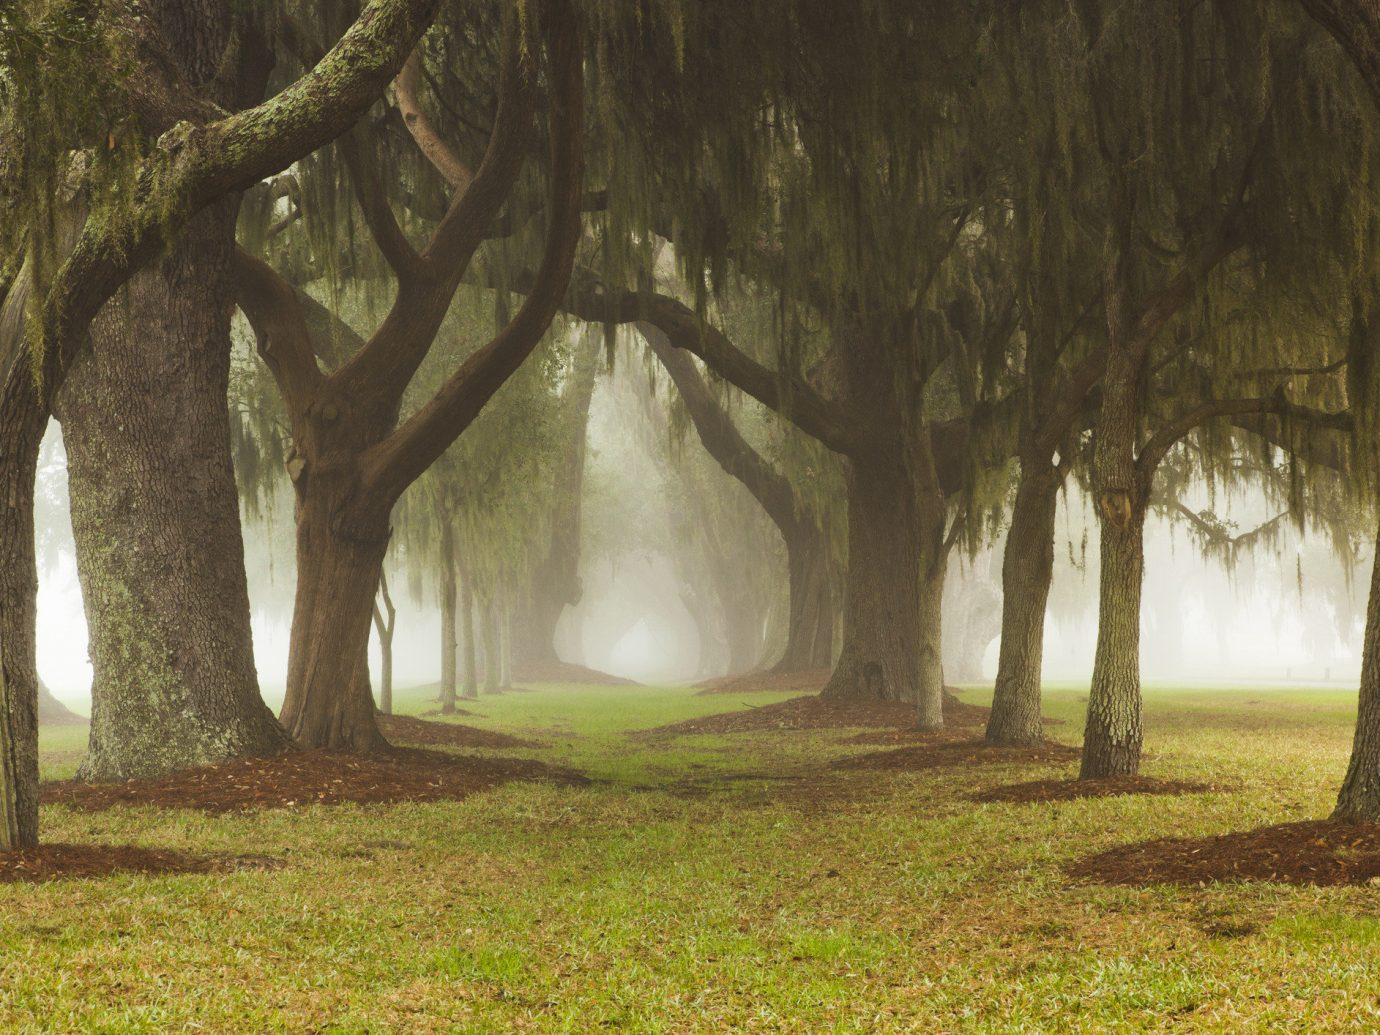 Trip Ideas grass tree outdoor habitat plant Nature willow natural environment Forest atmospheric phenomenon woodland green field sunlight morning woody plant mist leaf park branch Jungle autumn shade lush distance